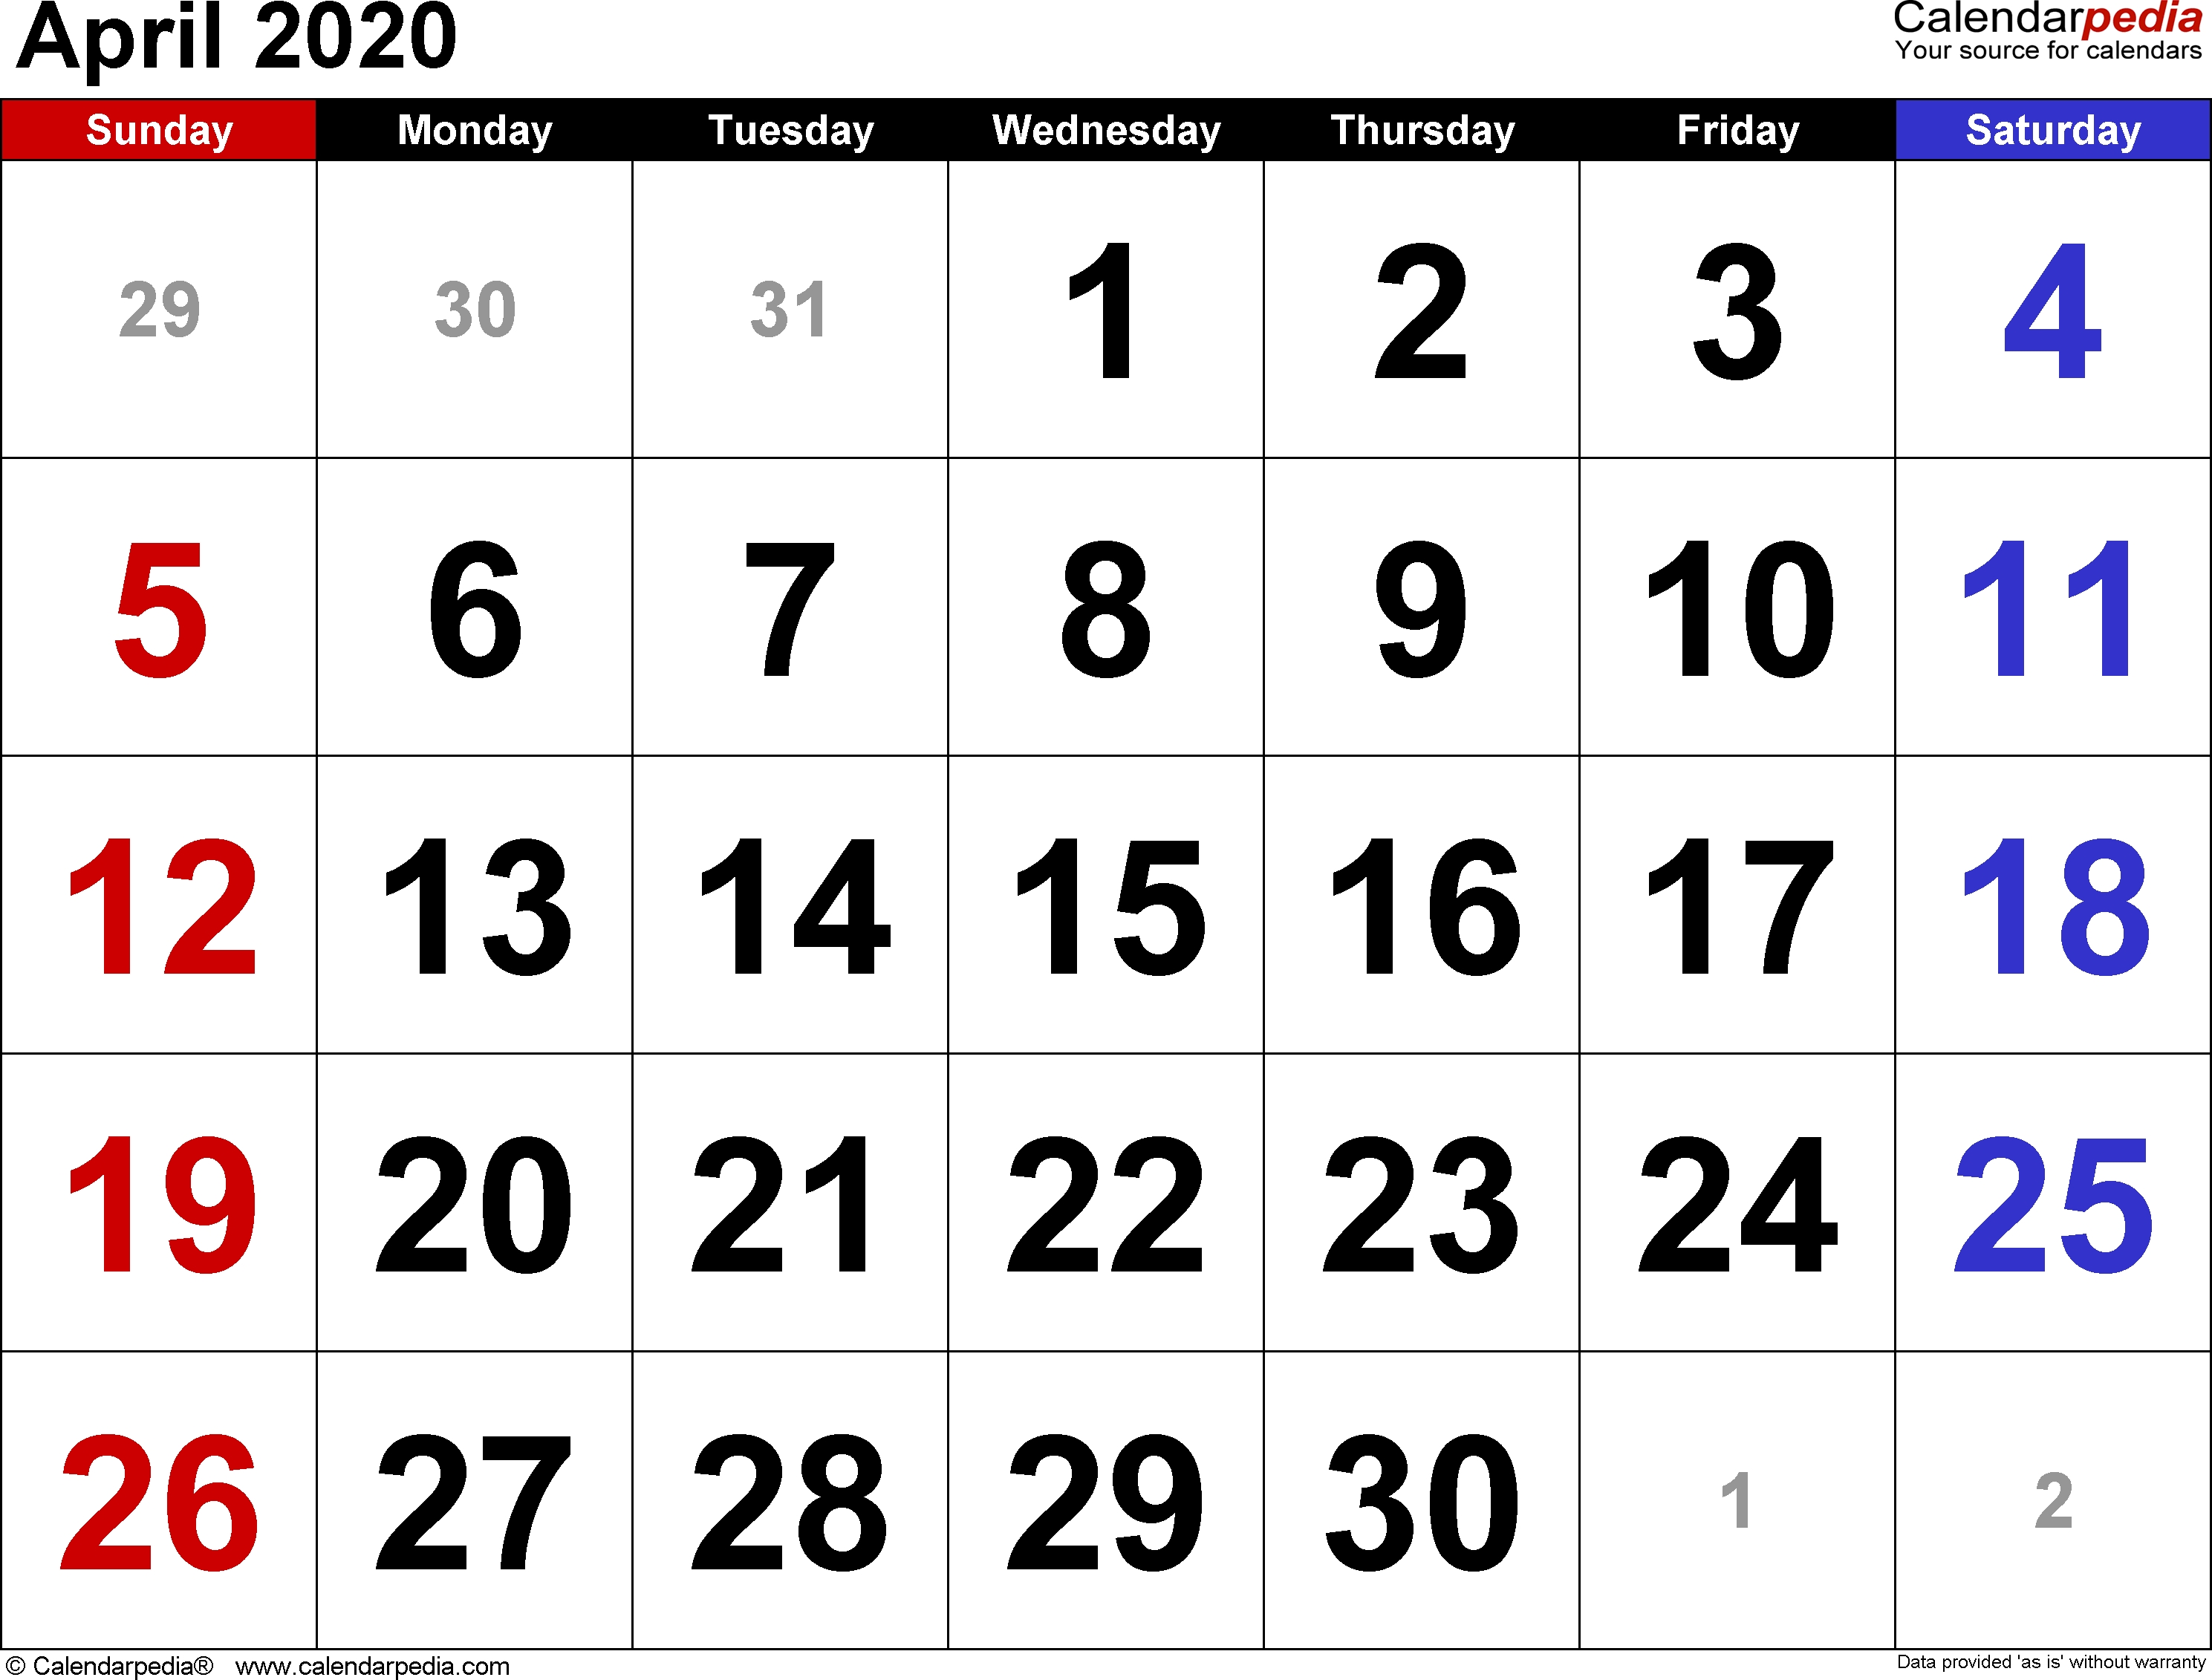 April 2020 Calendars For Word, Excel & Pdf